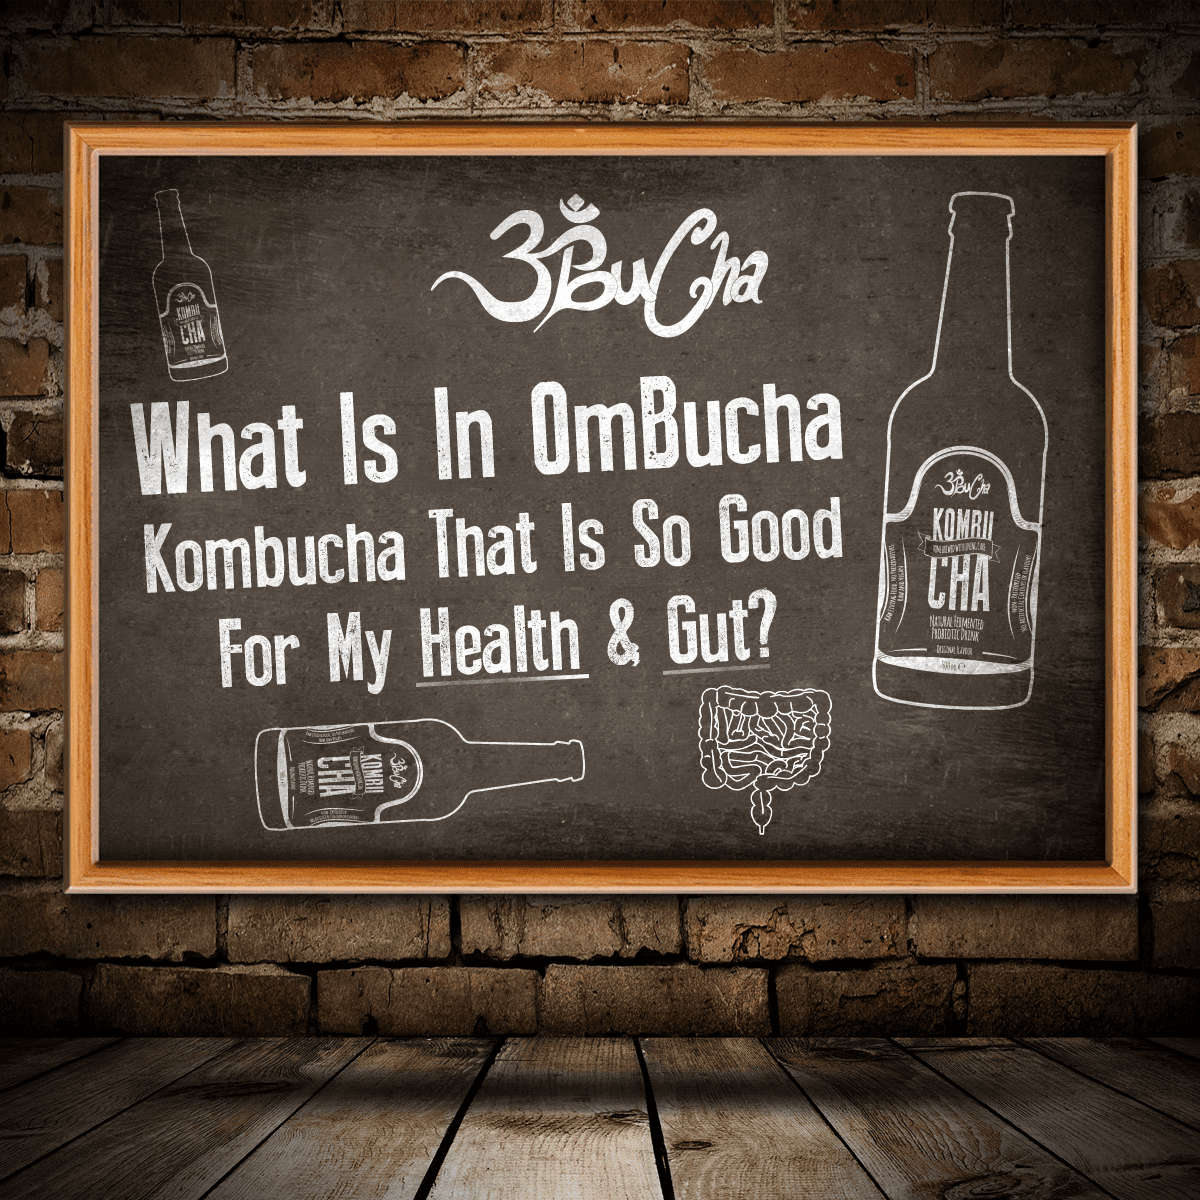 What is in Ombucha Kombucha that is so good for my health & gut?